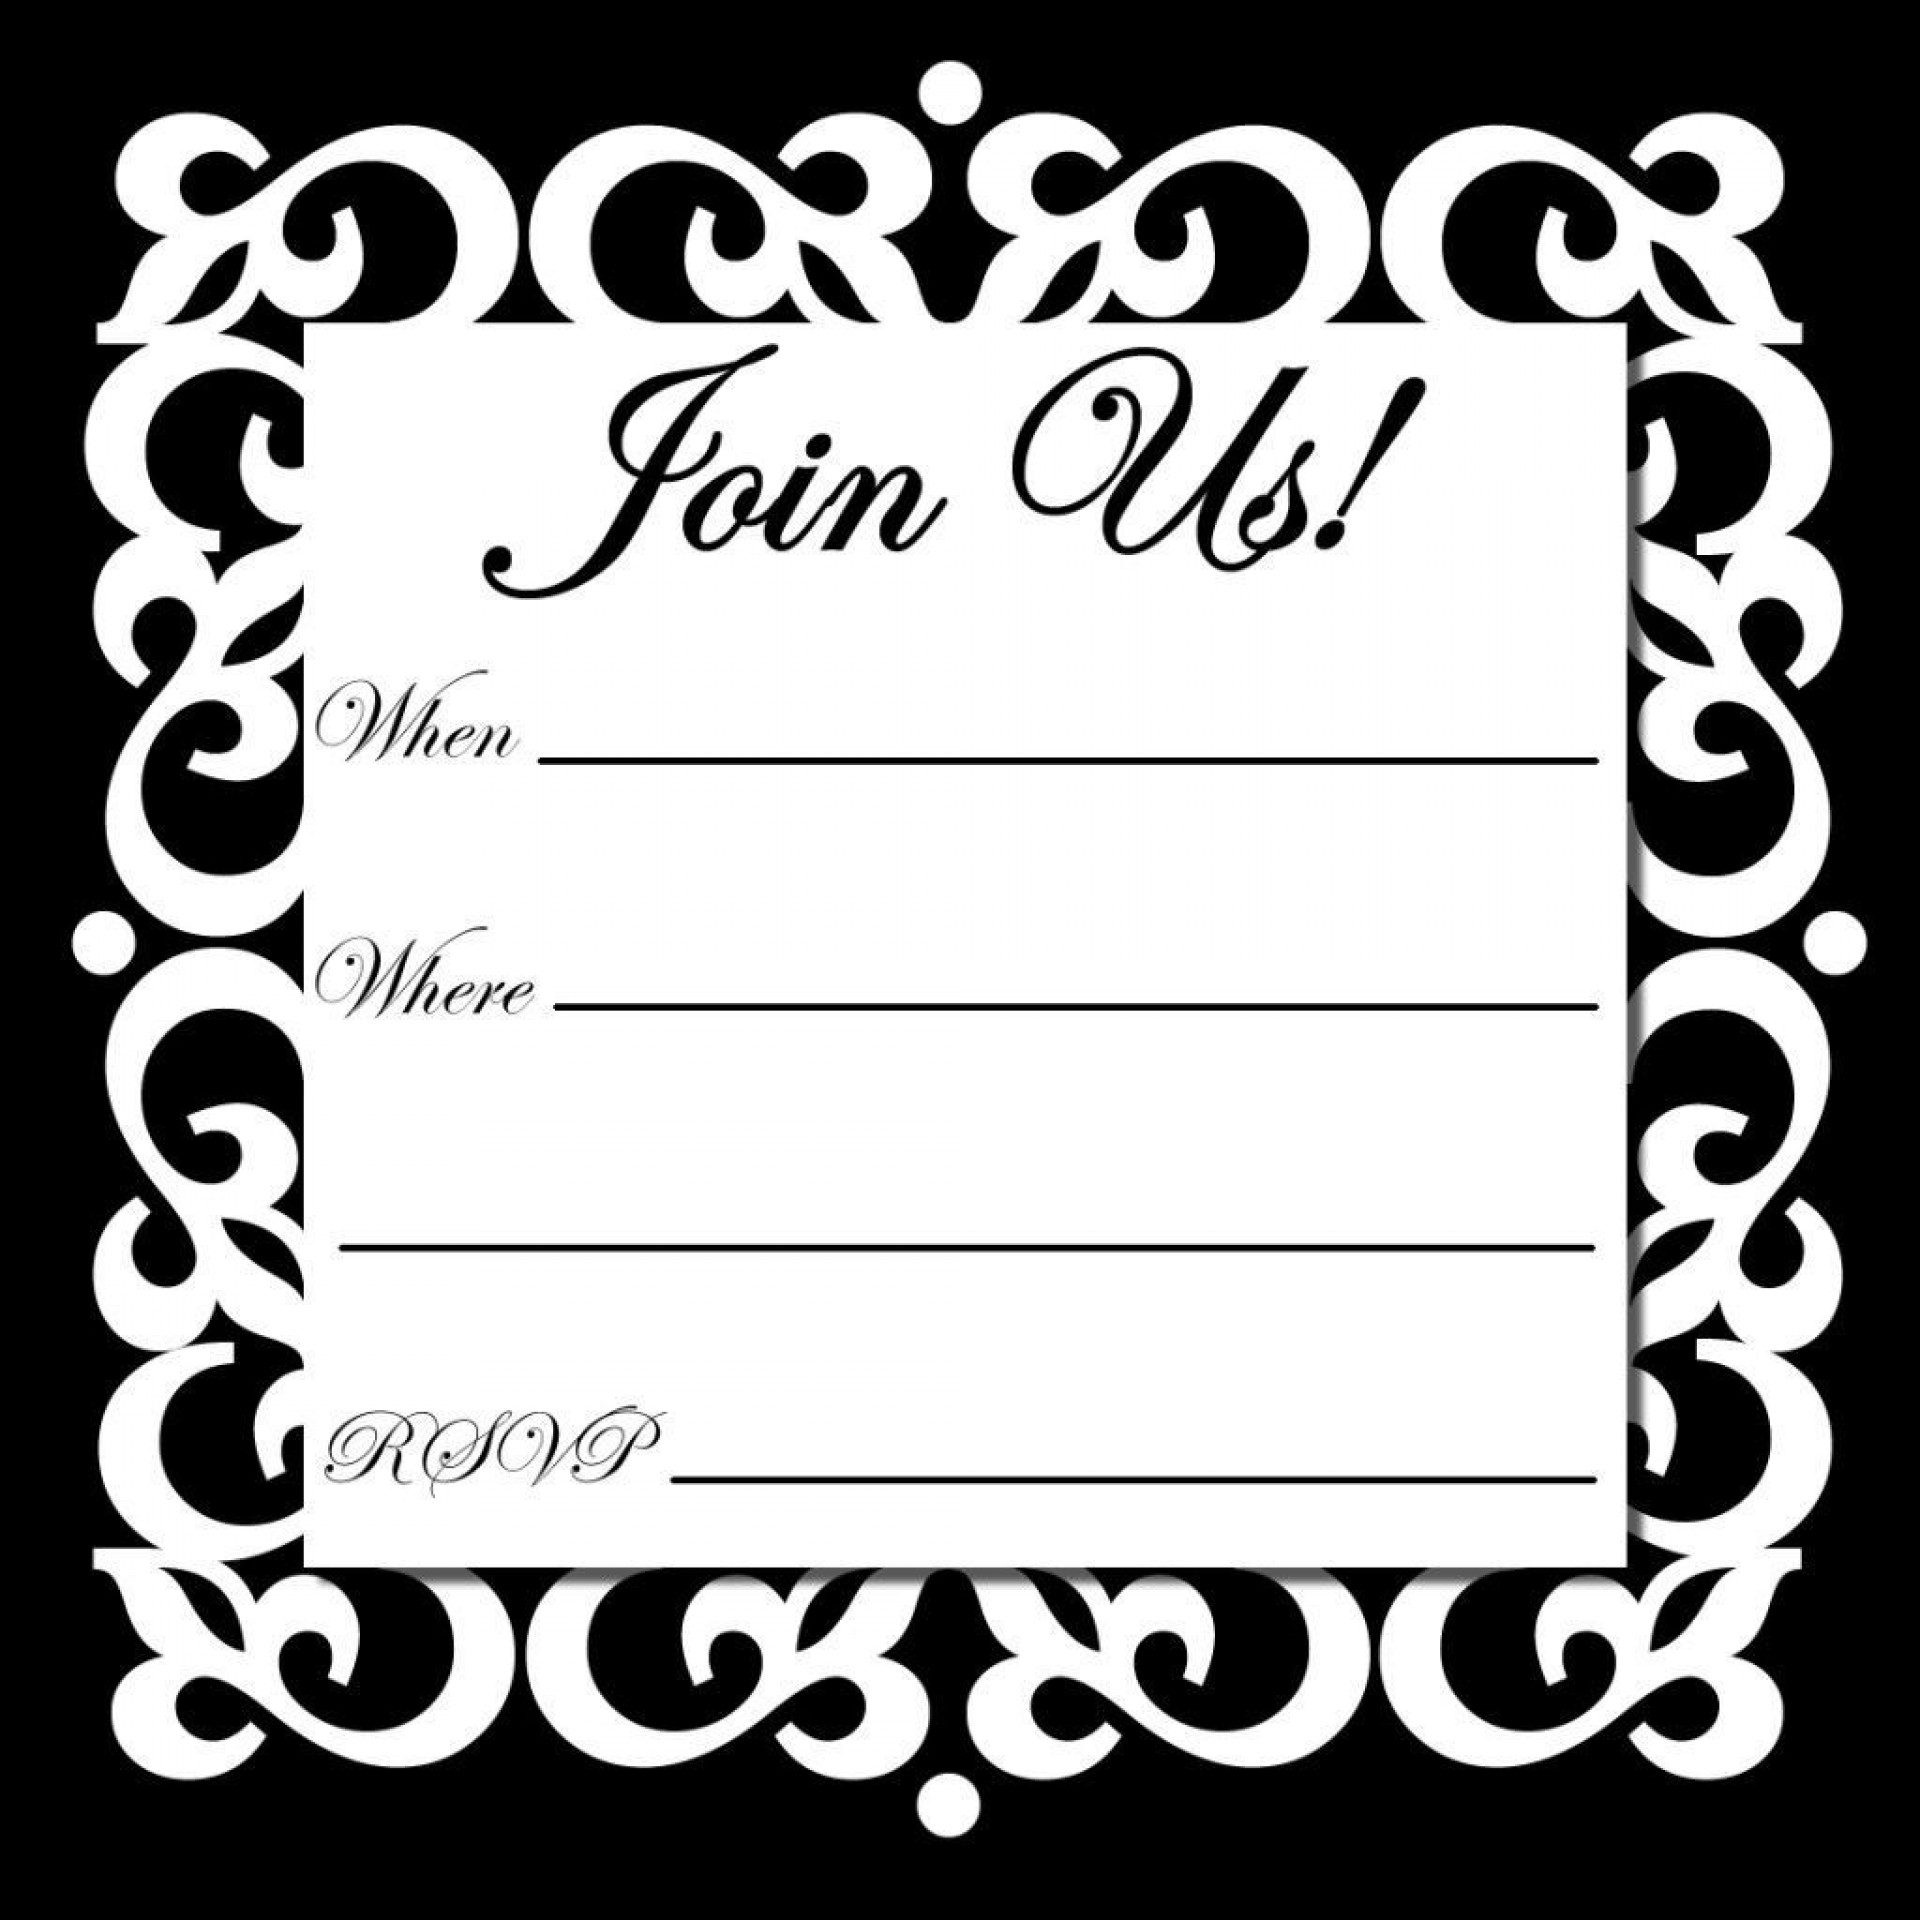 001 Dreaded Free Online Invitation Template Printable Photo  Baby Shower Wedding1920